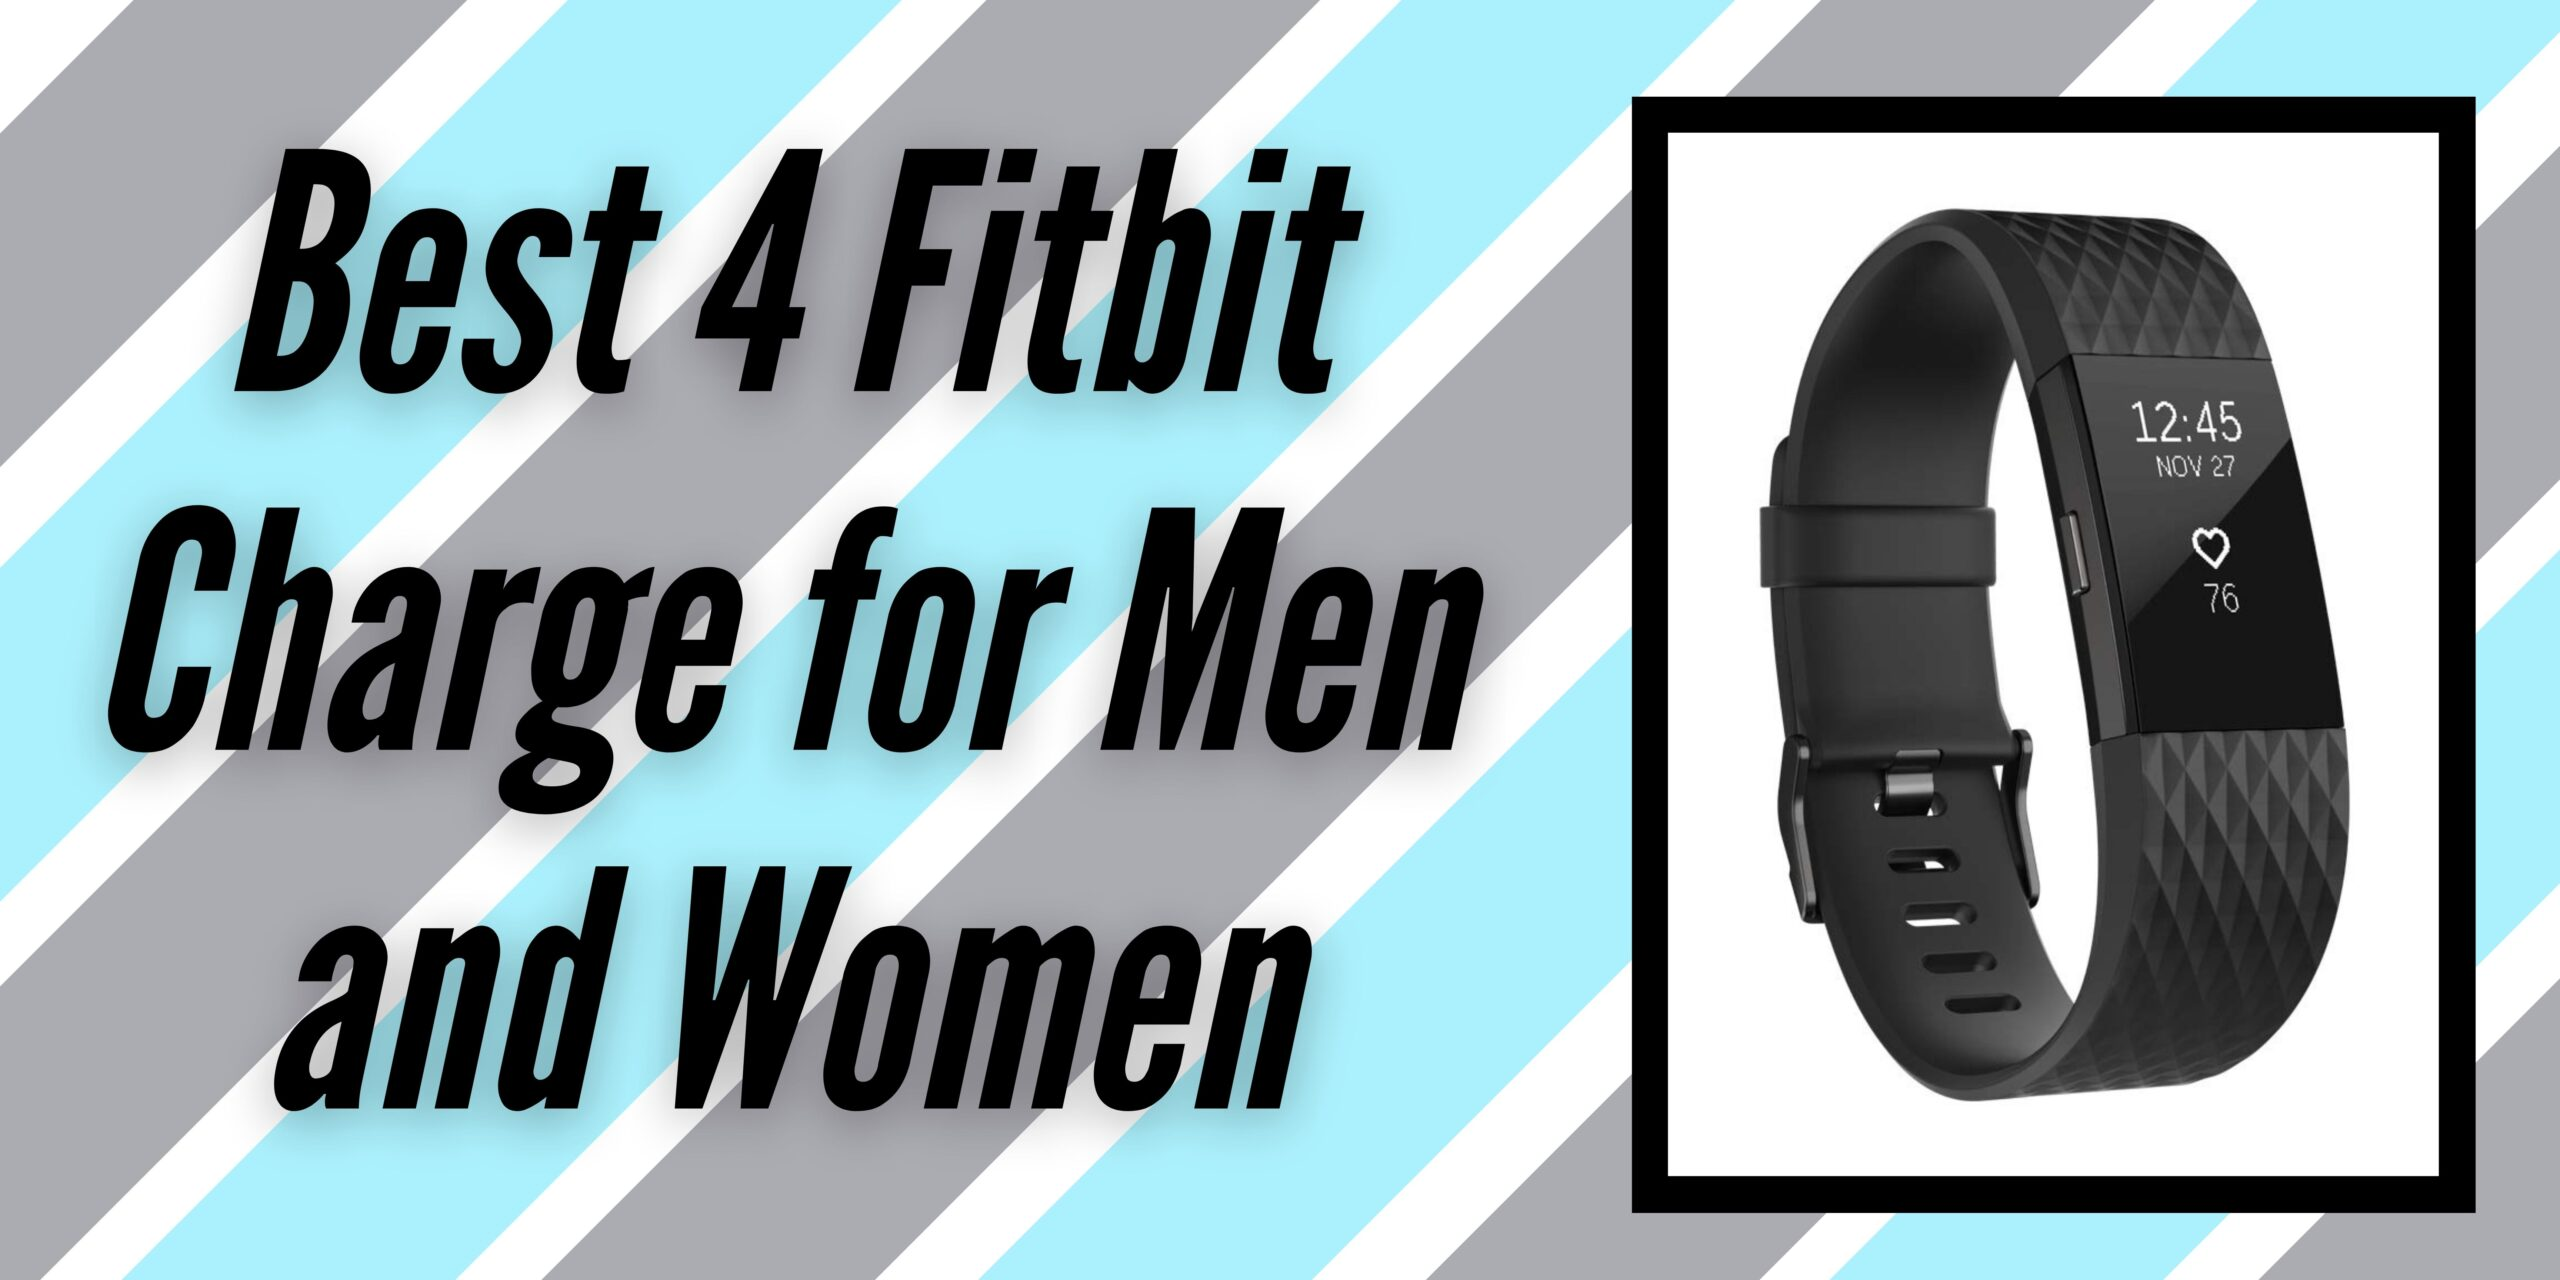 Best 4 Fitbit Charge for Men and Women